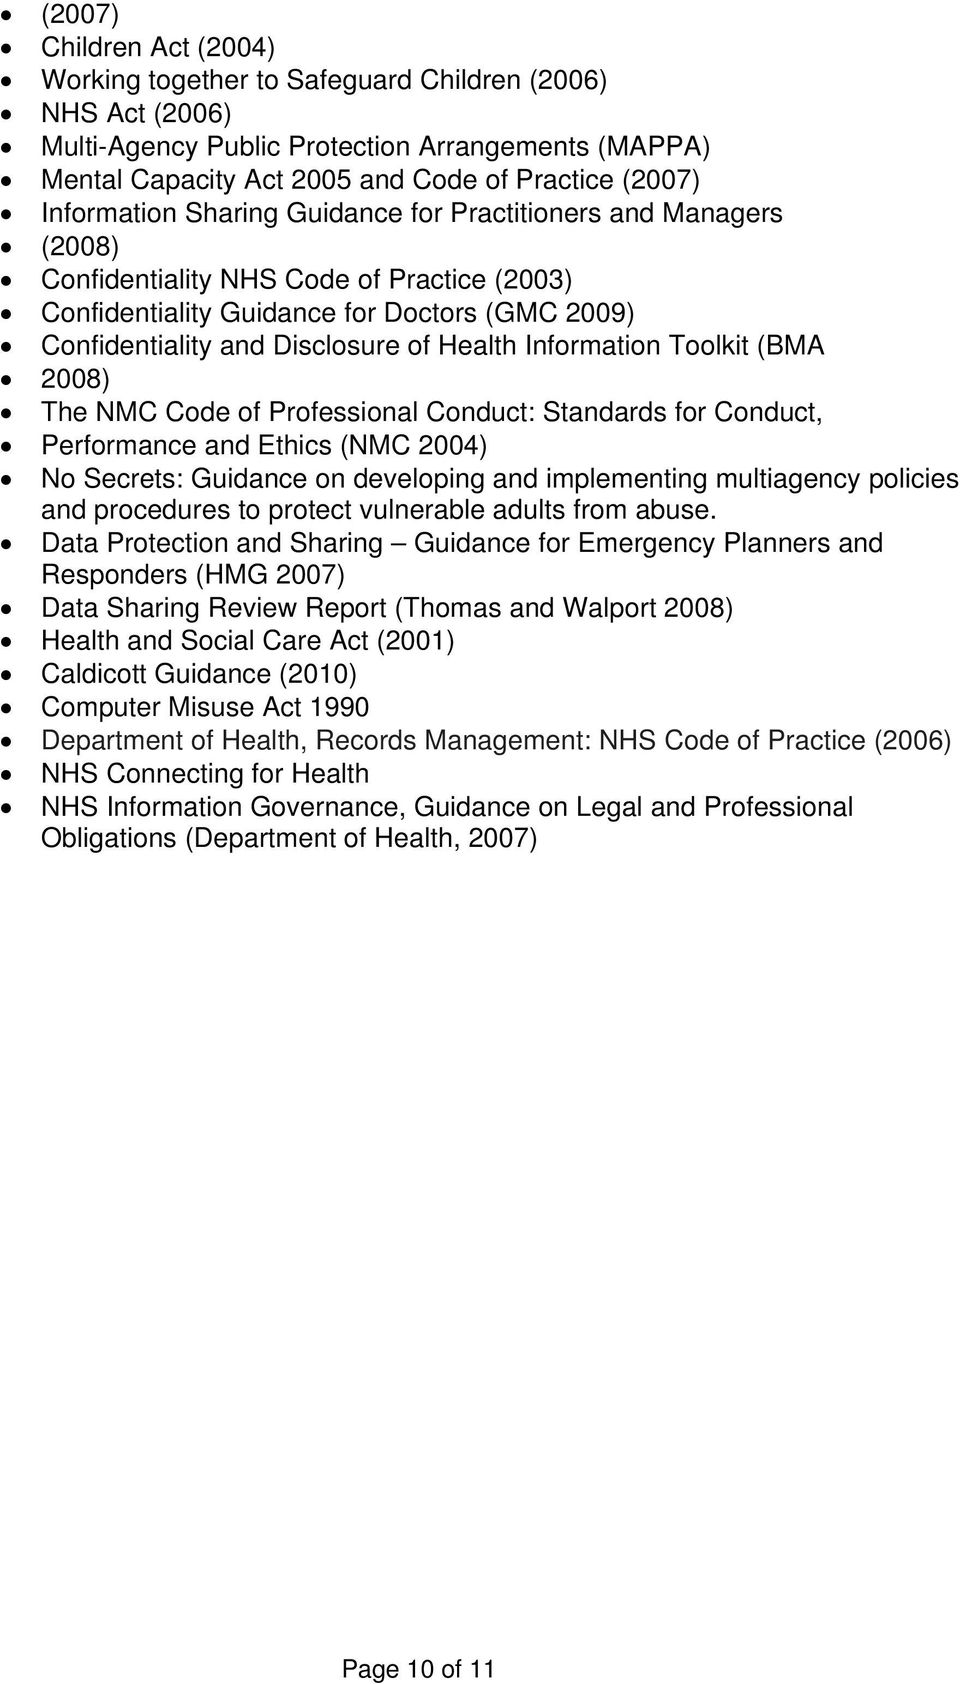 (BMA 2008) The NMC Code of Professional Conduct: Standards for Conduct, Performance and Ethics (NMC 2004) No Secrets: Guidance on developing and implementing multiagency policies and procedures to